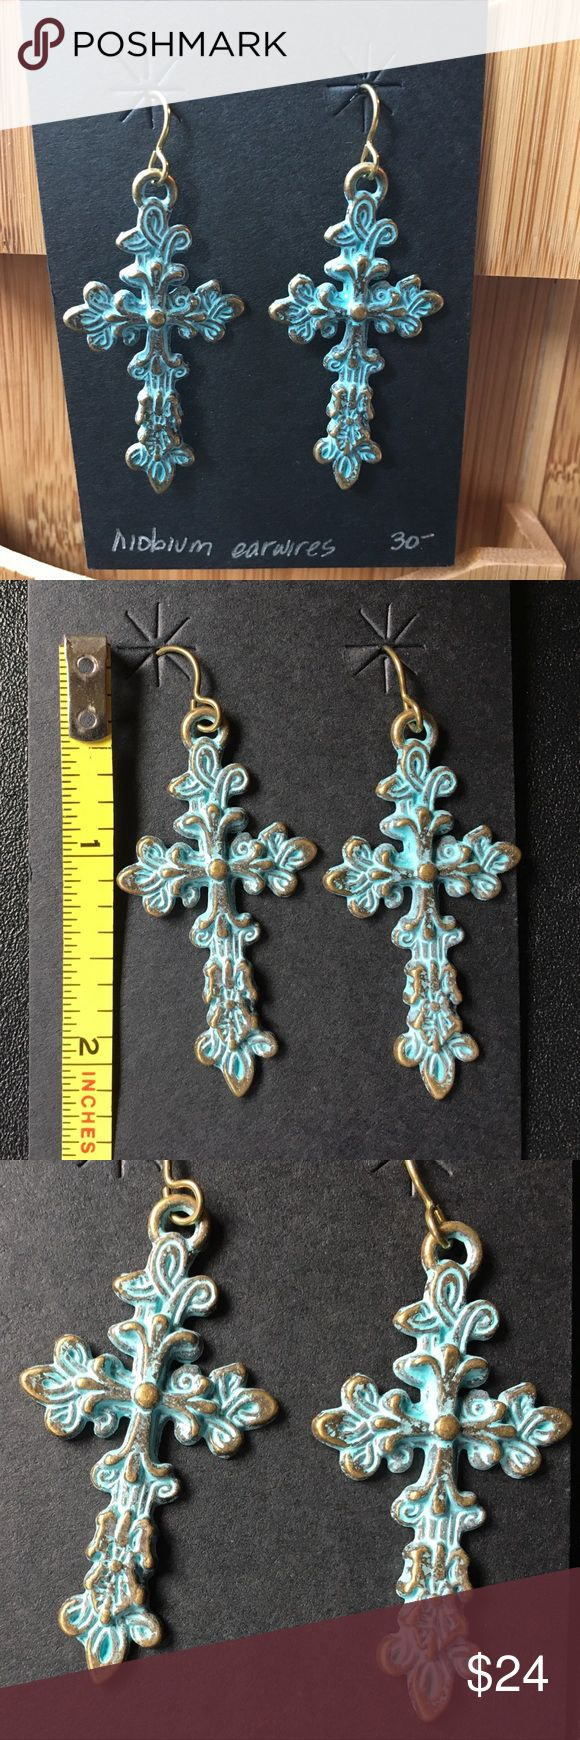 """NEW ornate copper and patina look cross earrings NEW ornate copper and patina look cross earrings handmade, one of a kind. Approximately 2"""" long, 1"""" wide at widest point. Niobium eat wires, faux copper with green patina for the look without the weight (or price tag) of copper.  Very pretty 🌹 Jewelry Earrings"""